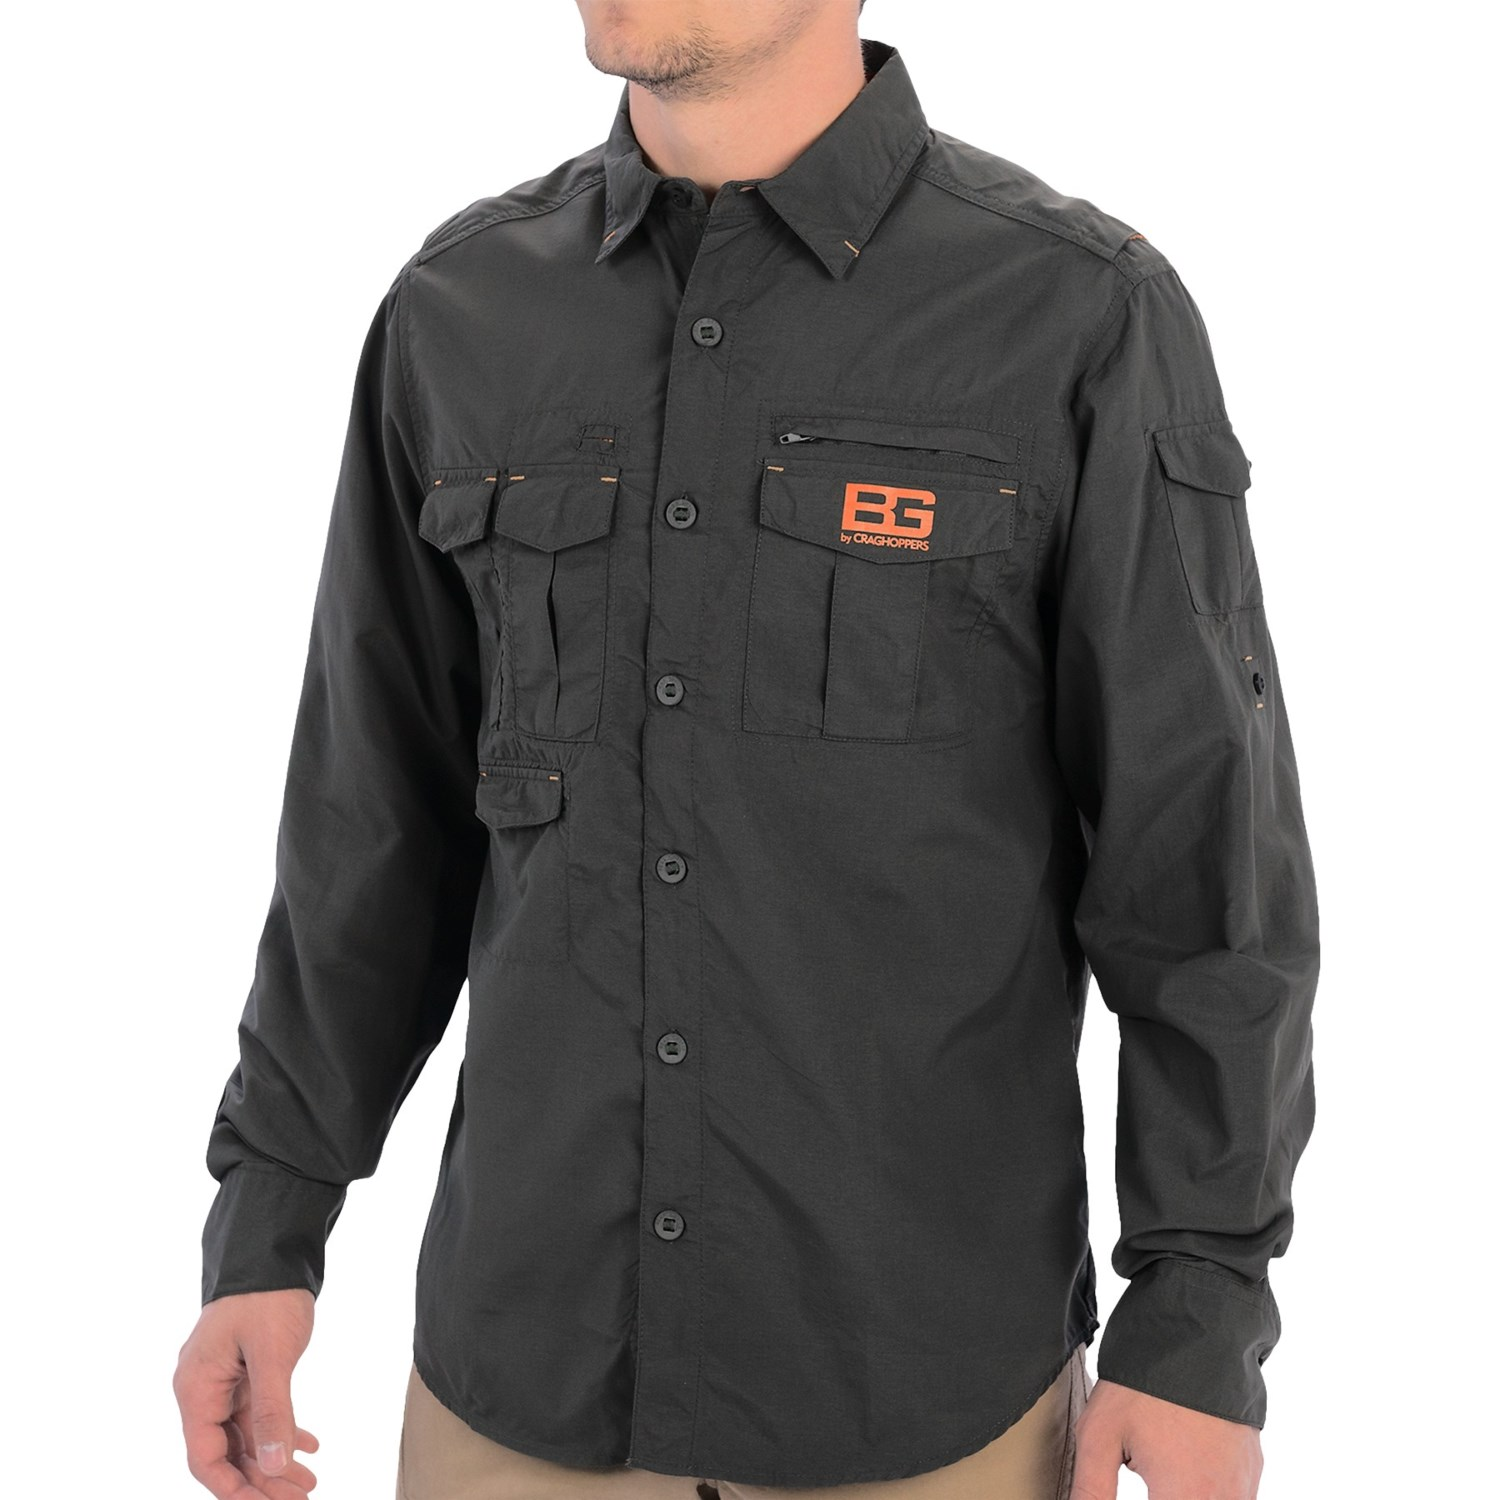 a2ace3ecb236 Craghoppers Bear Grylls Adventure Shirt (For Men) 9166Y 55 on PopScreen